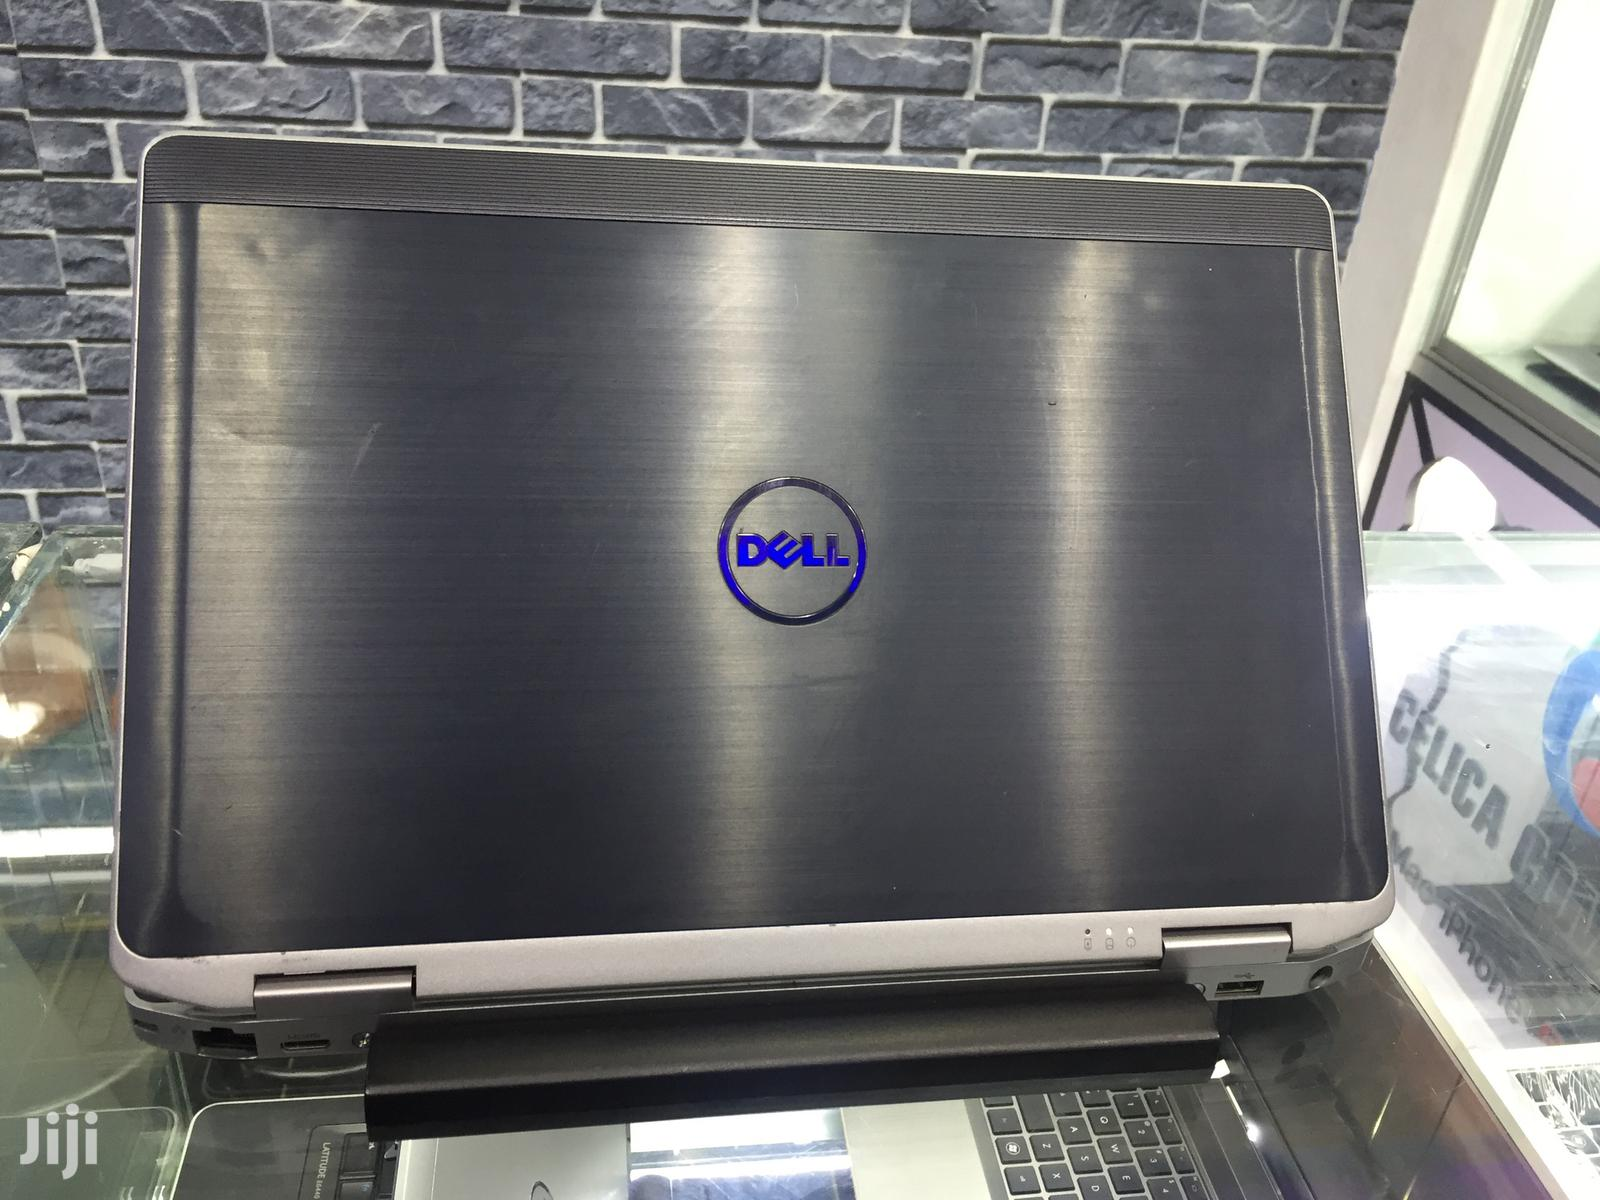 Laptop Dell Latitude E6330 4GB Intel Core I5 320GB | Laptops & Computers for sale in Nairobi Central, Nairobi, Kenya